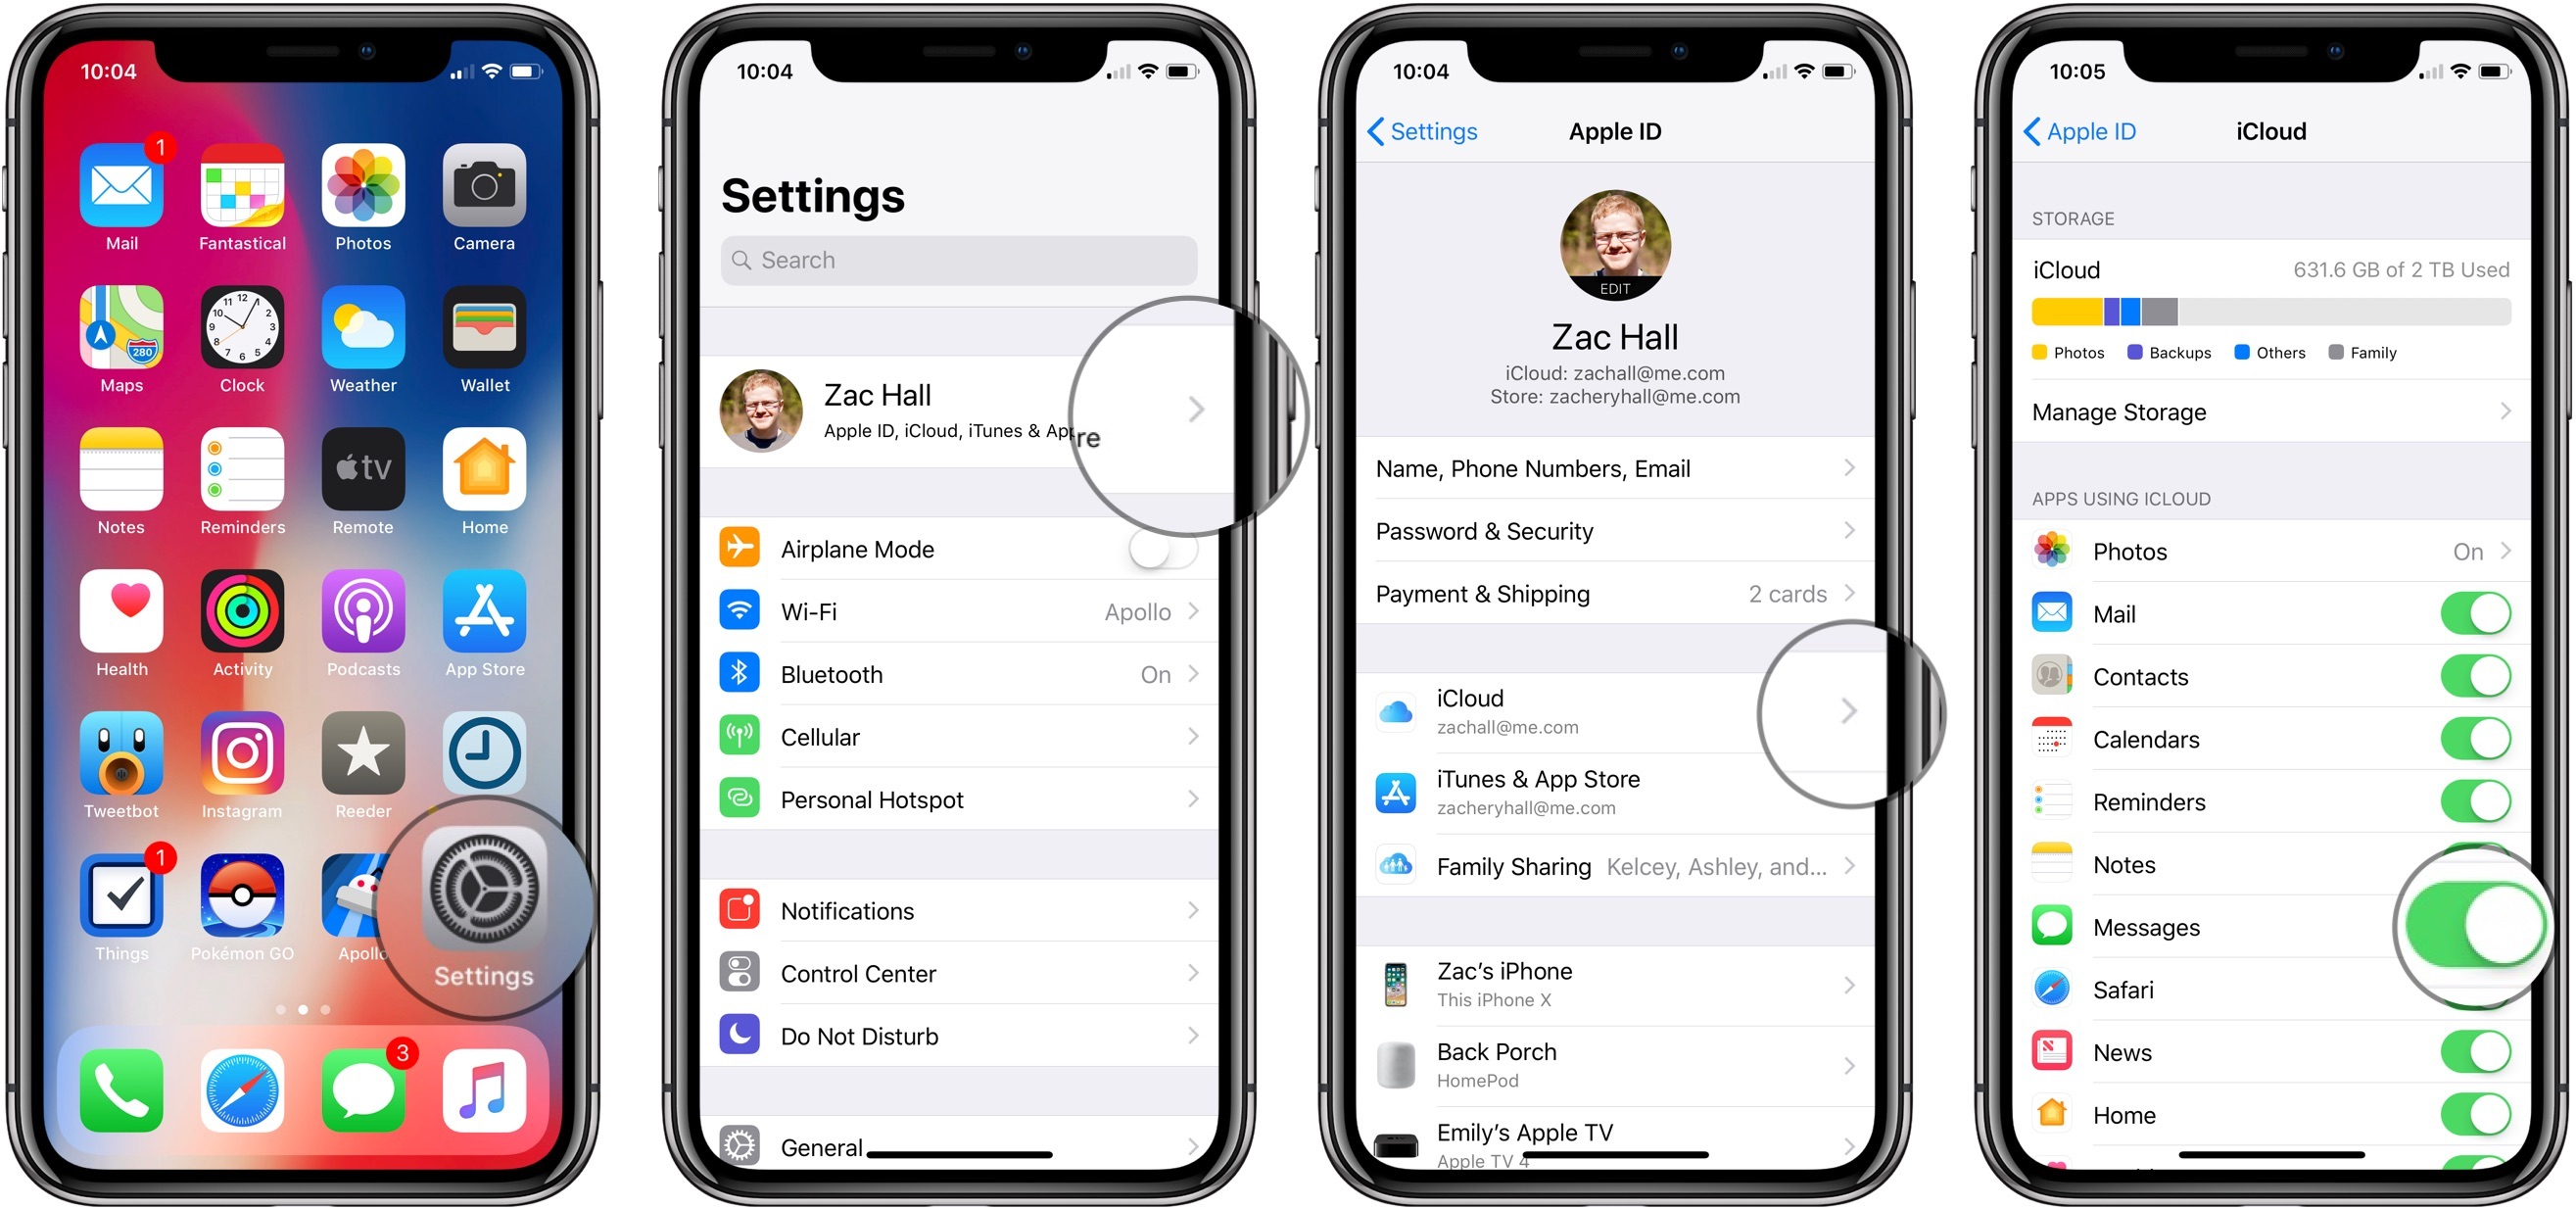 Messages in iCloud arrives with iOS 11 4, here's how it